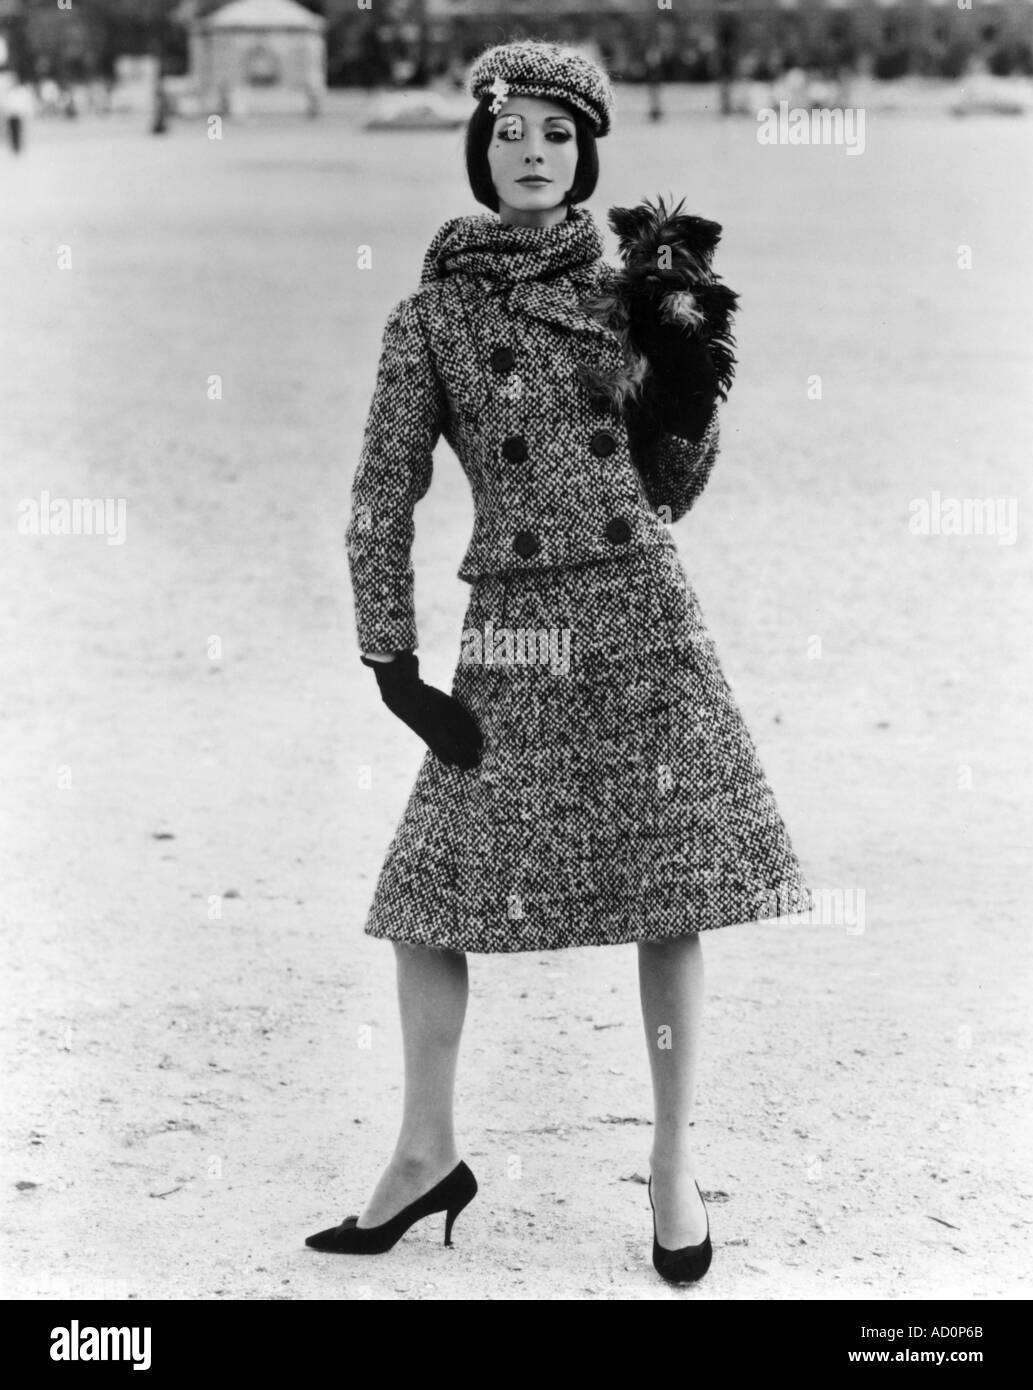 Tweed suit by Christian Dior, Paris. Photo by John French, London, England, 1961. - Stock Image